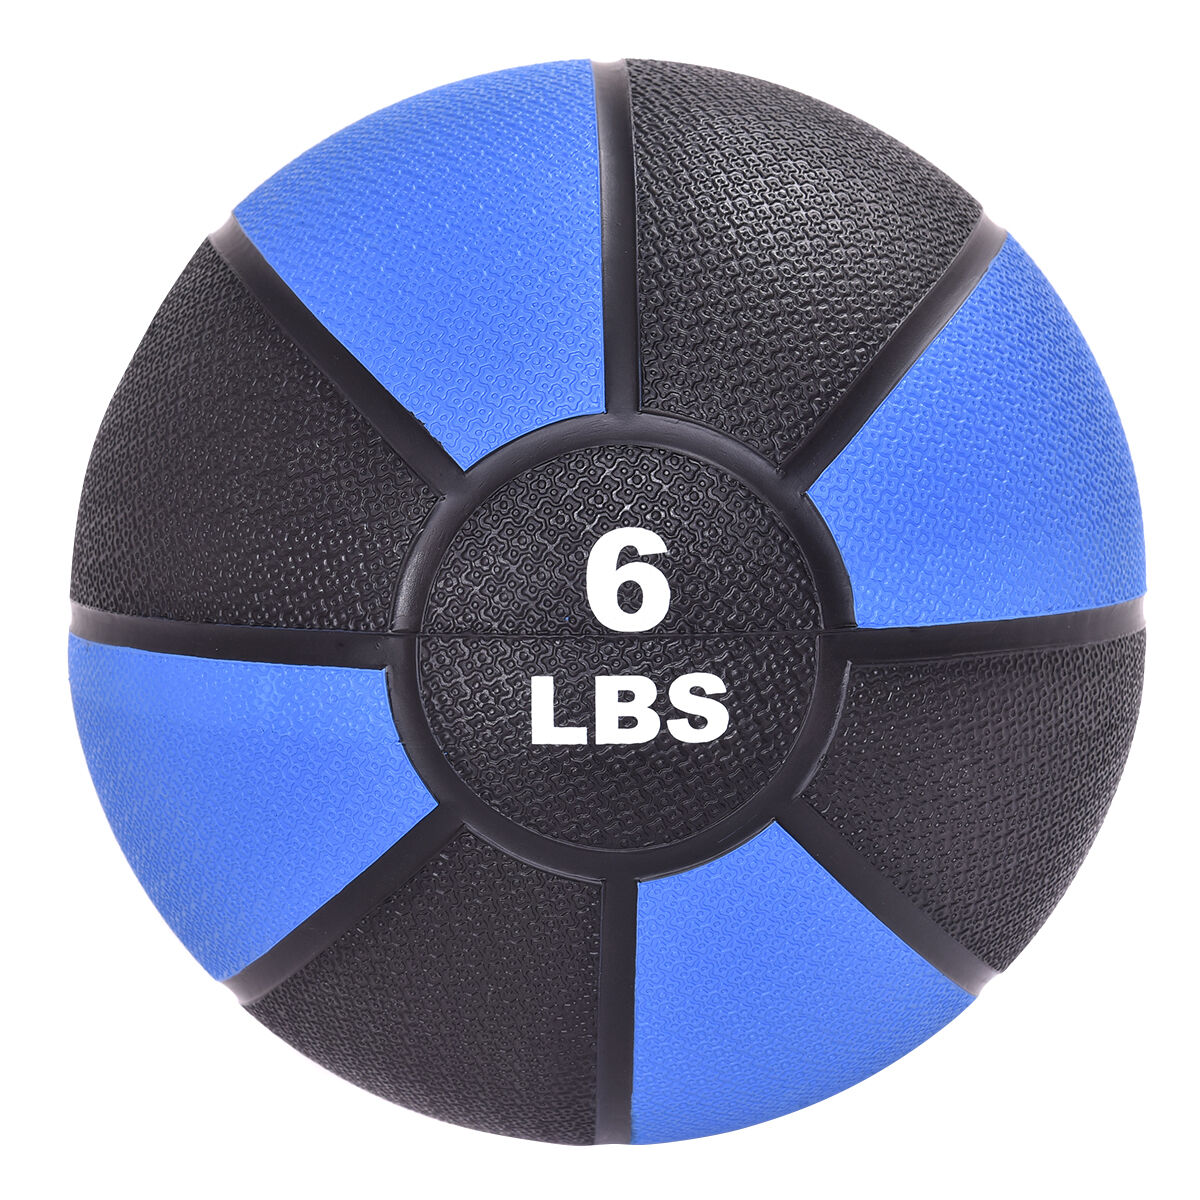 Fitness-Weighted-Medicine-Ball-Wall-Balance-Training-Muscle-Build-4-6-8-10-12lbs thumbnail 27